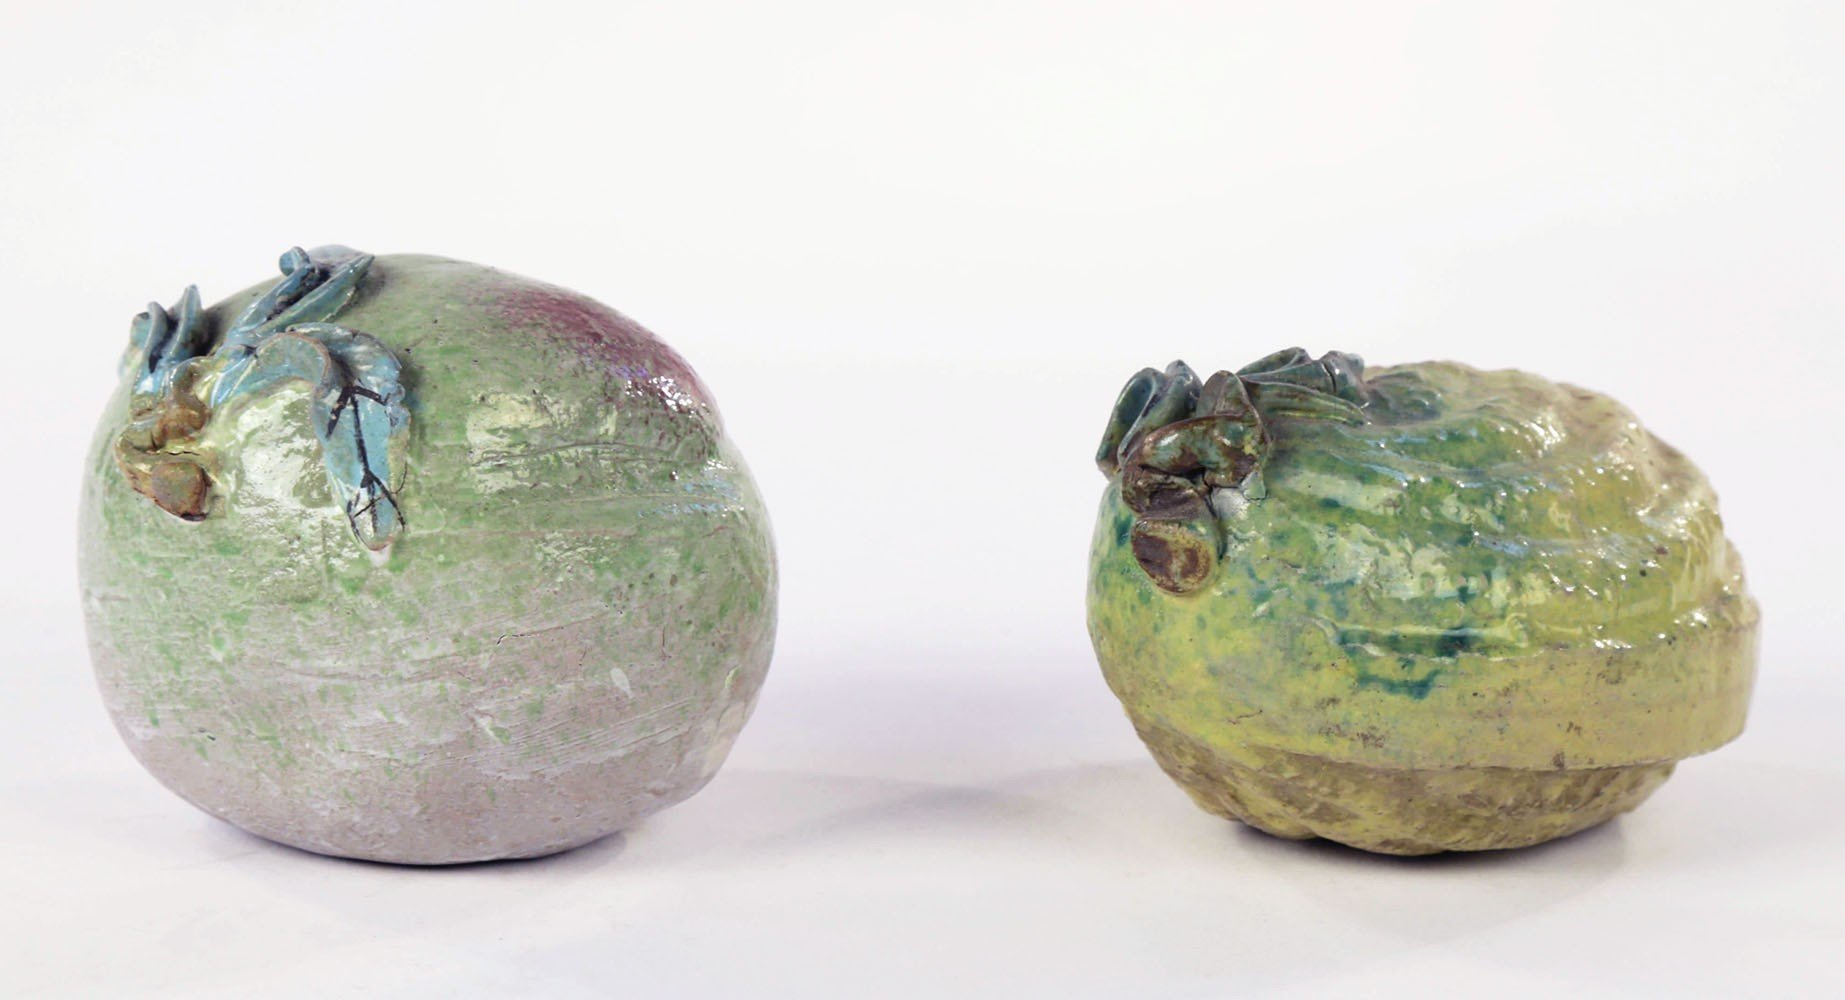 Two Chinese Glazed Ceramic Fruits by 20th Century Chinese School